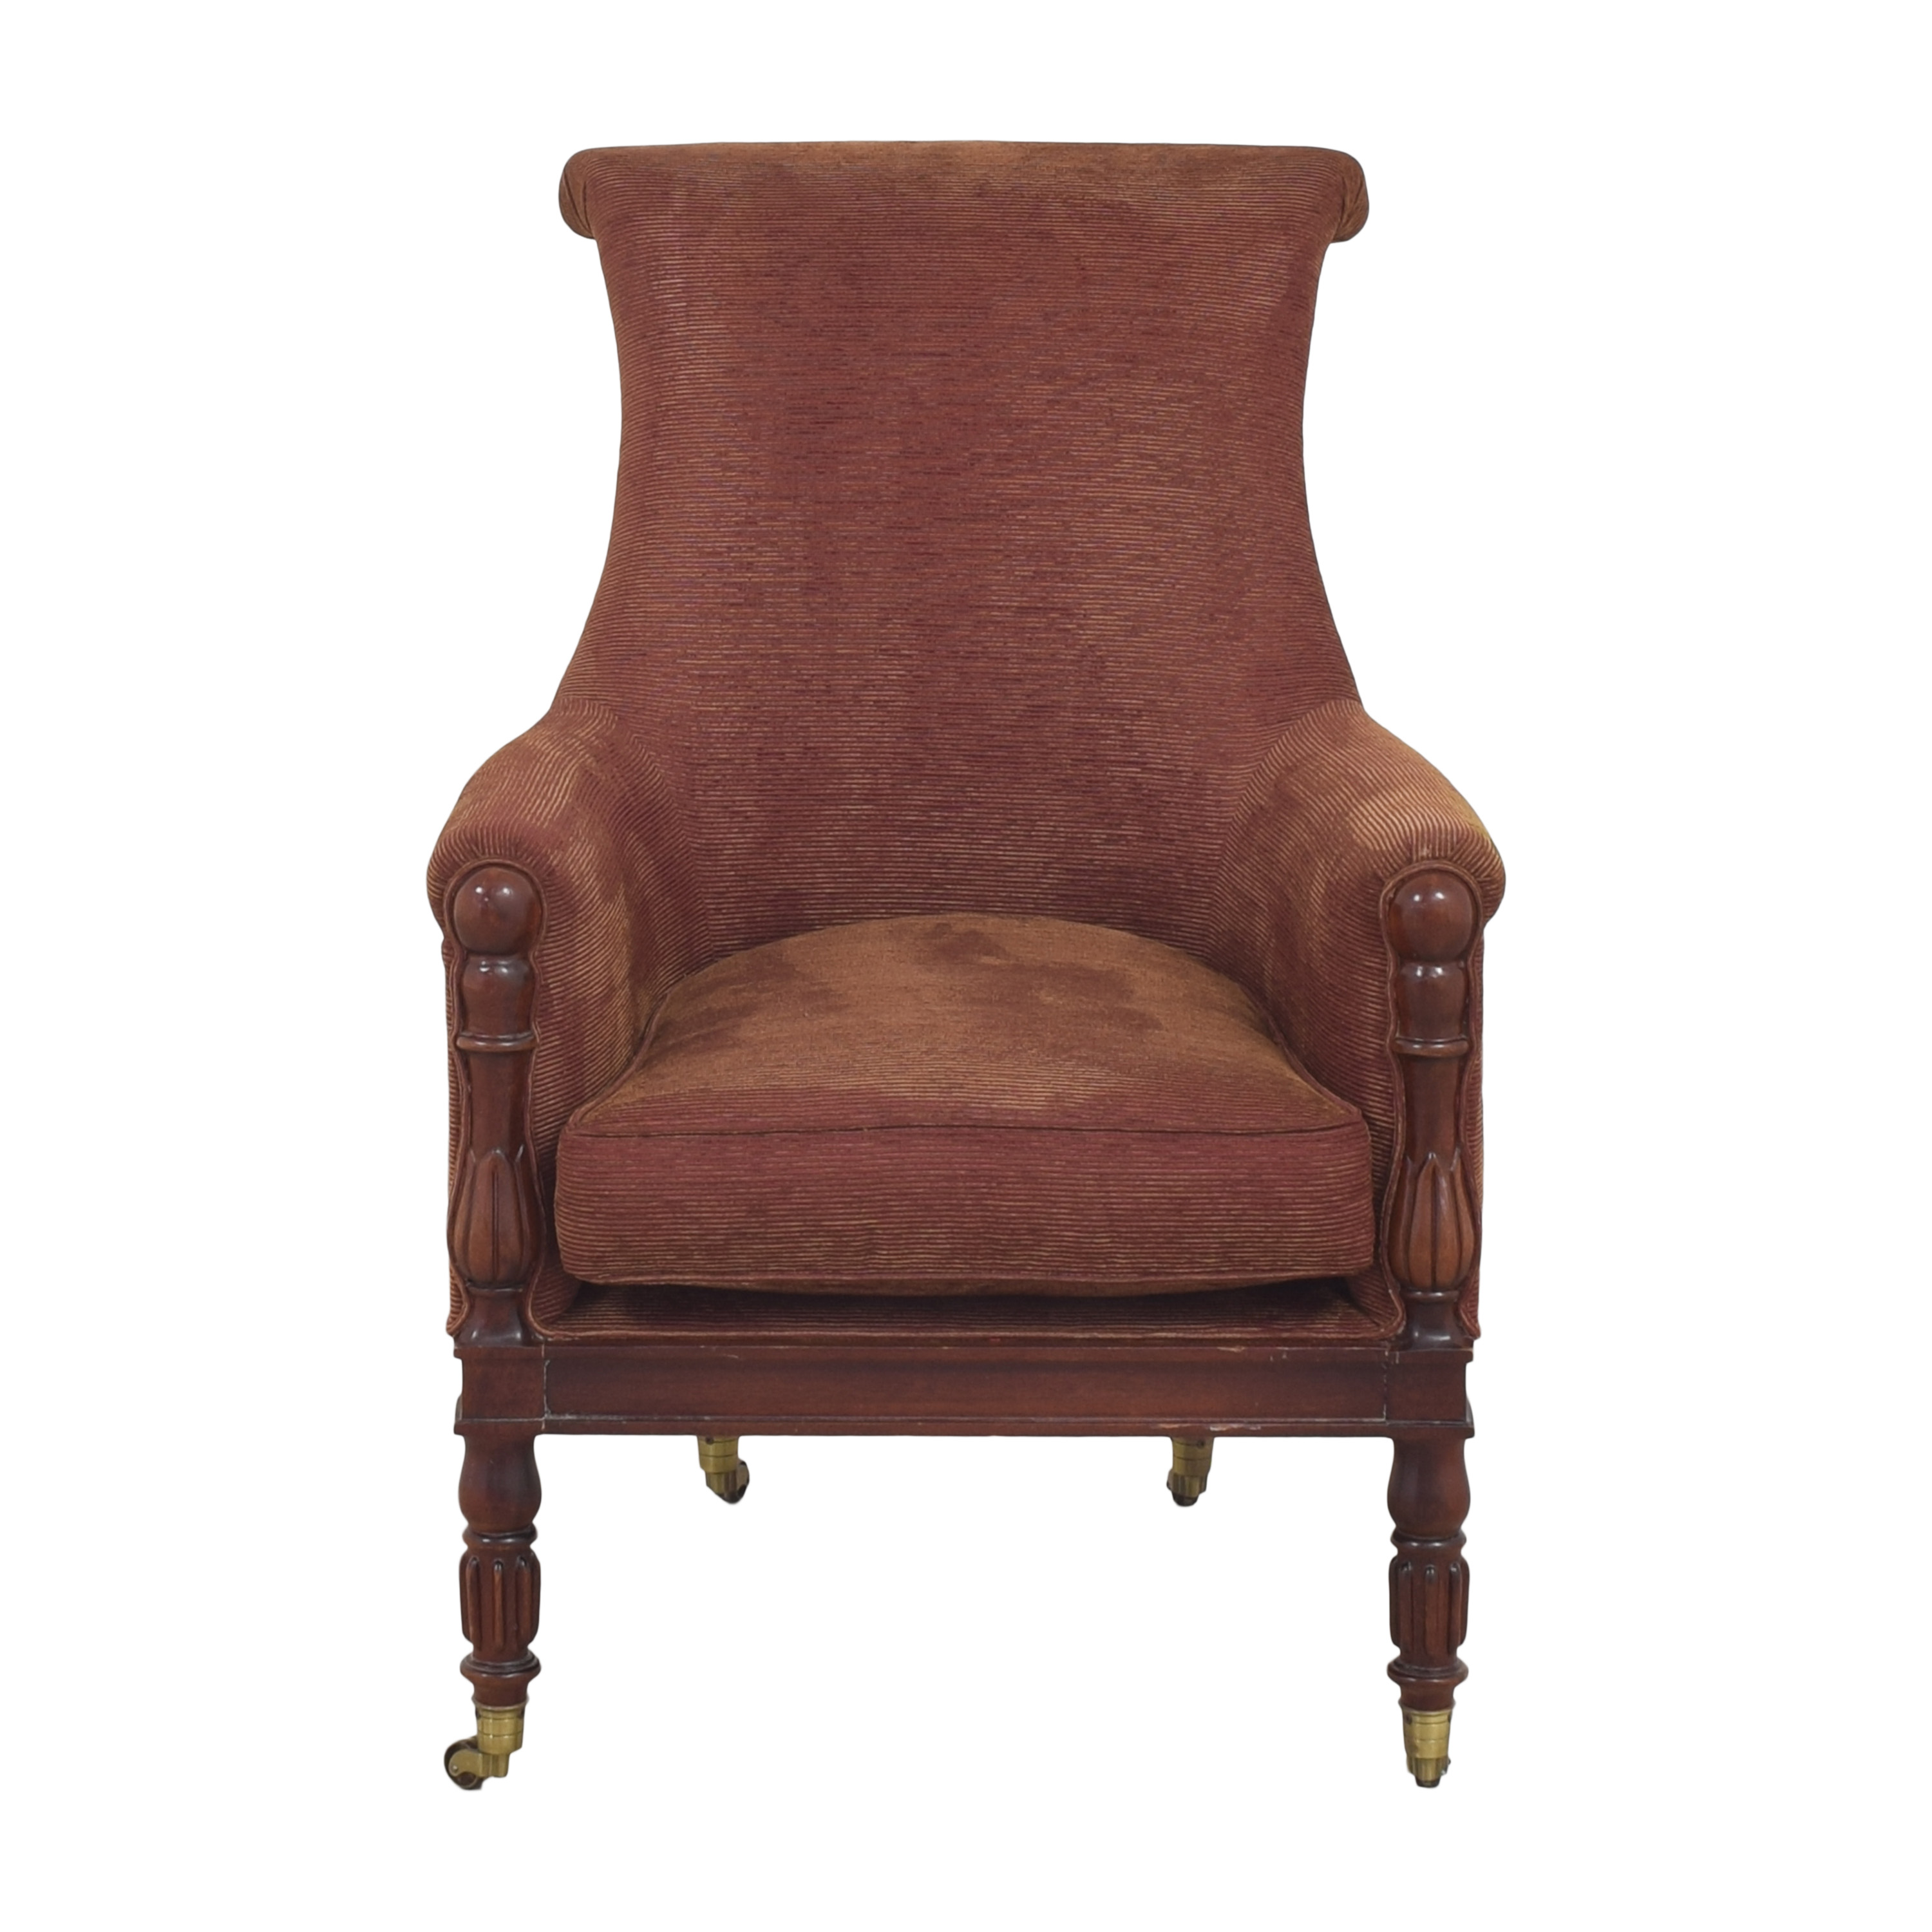 Hickory Chair Hickory Chair Mark Hampton Collection Regency Library Chair on sale